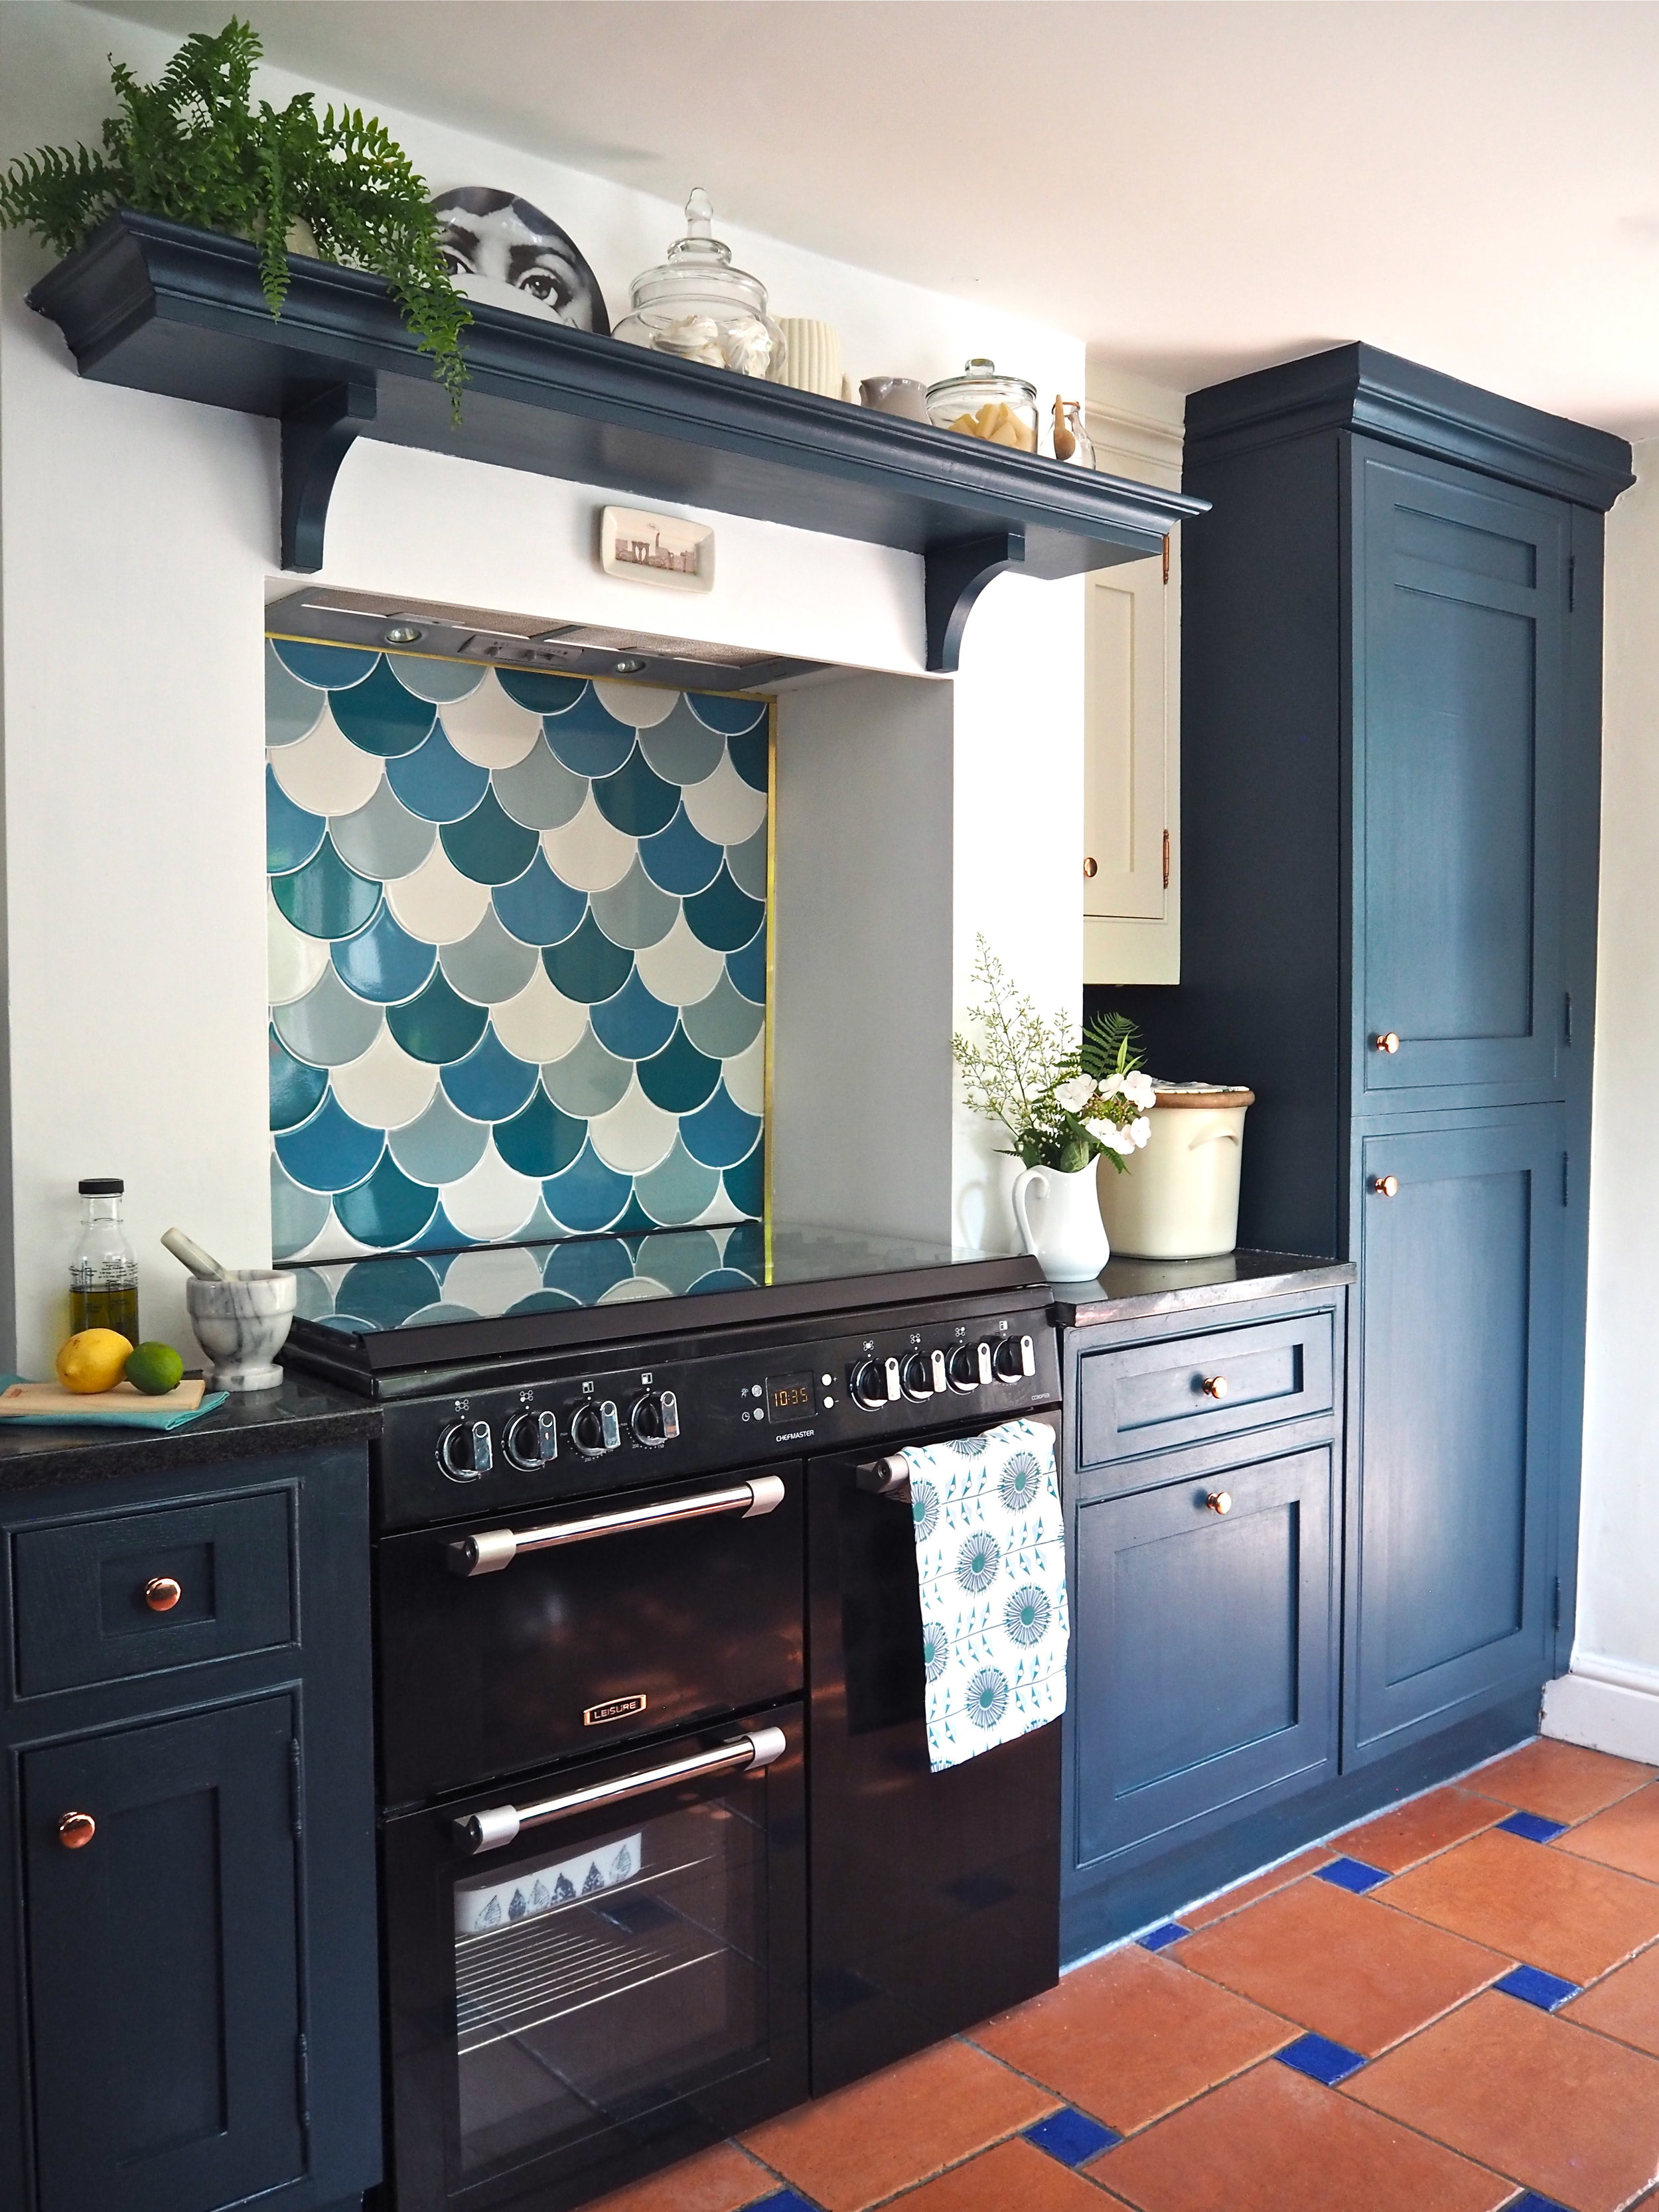 DIY Kitchen Splashback With The Syren Tiles by Topps Tiles ...